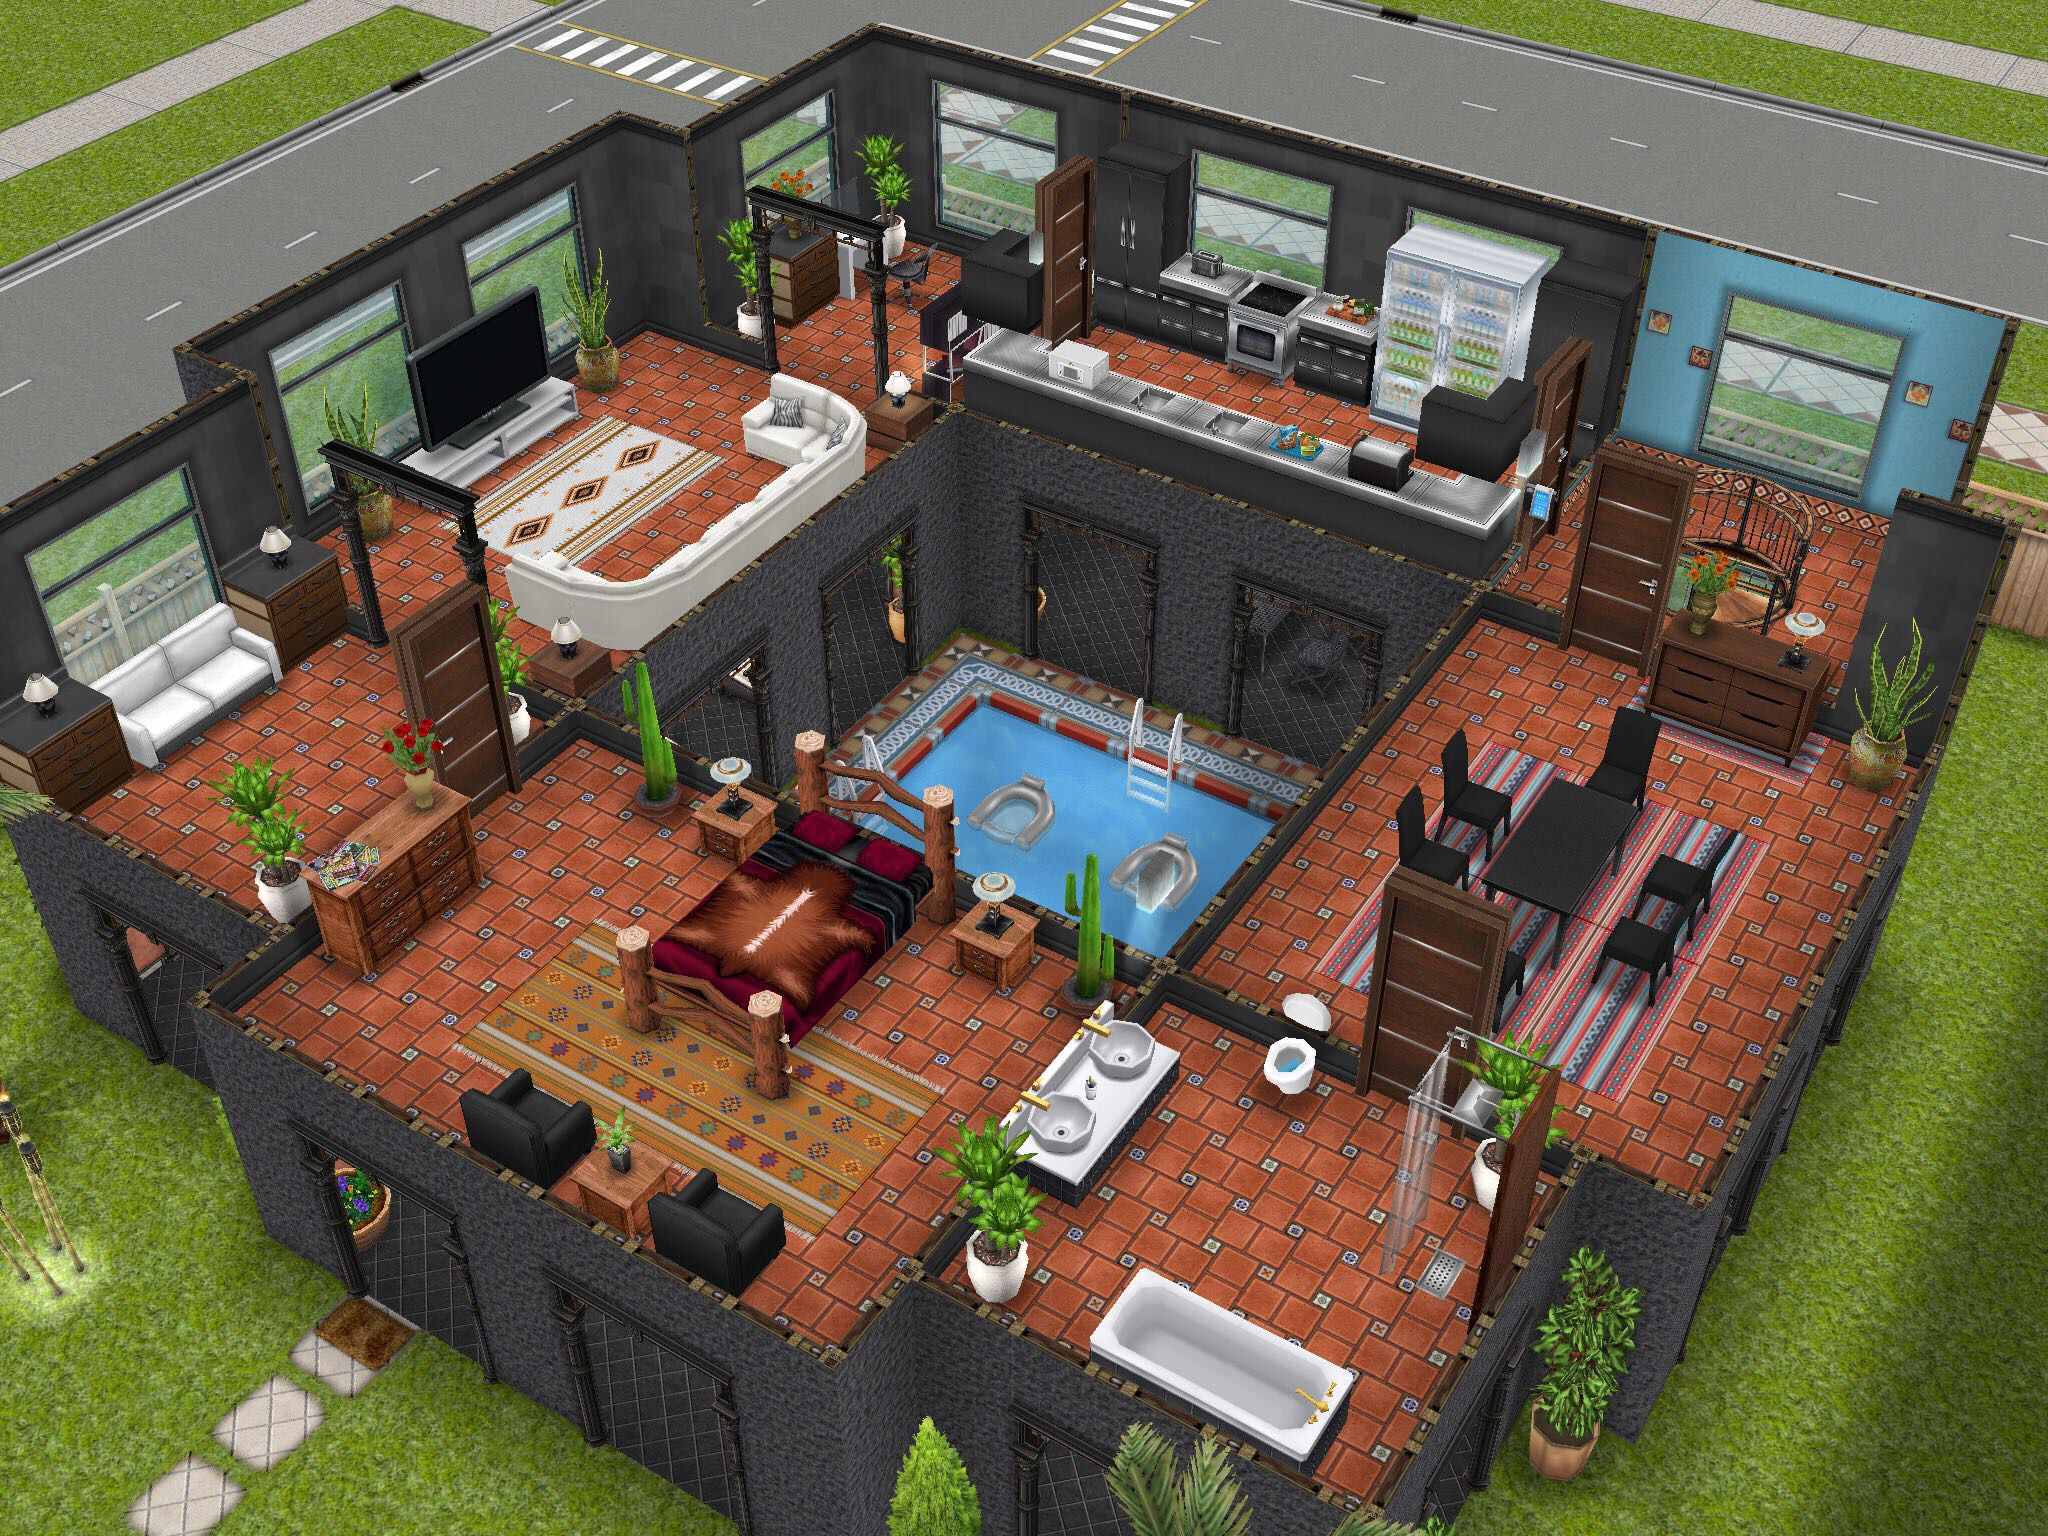 Exceptional Variation On Stilts House Design I Saw On Pinterest! #thesims #freeplay # Simsfreeplay